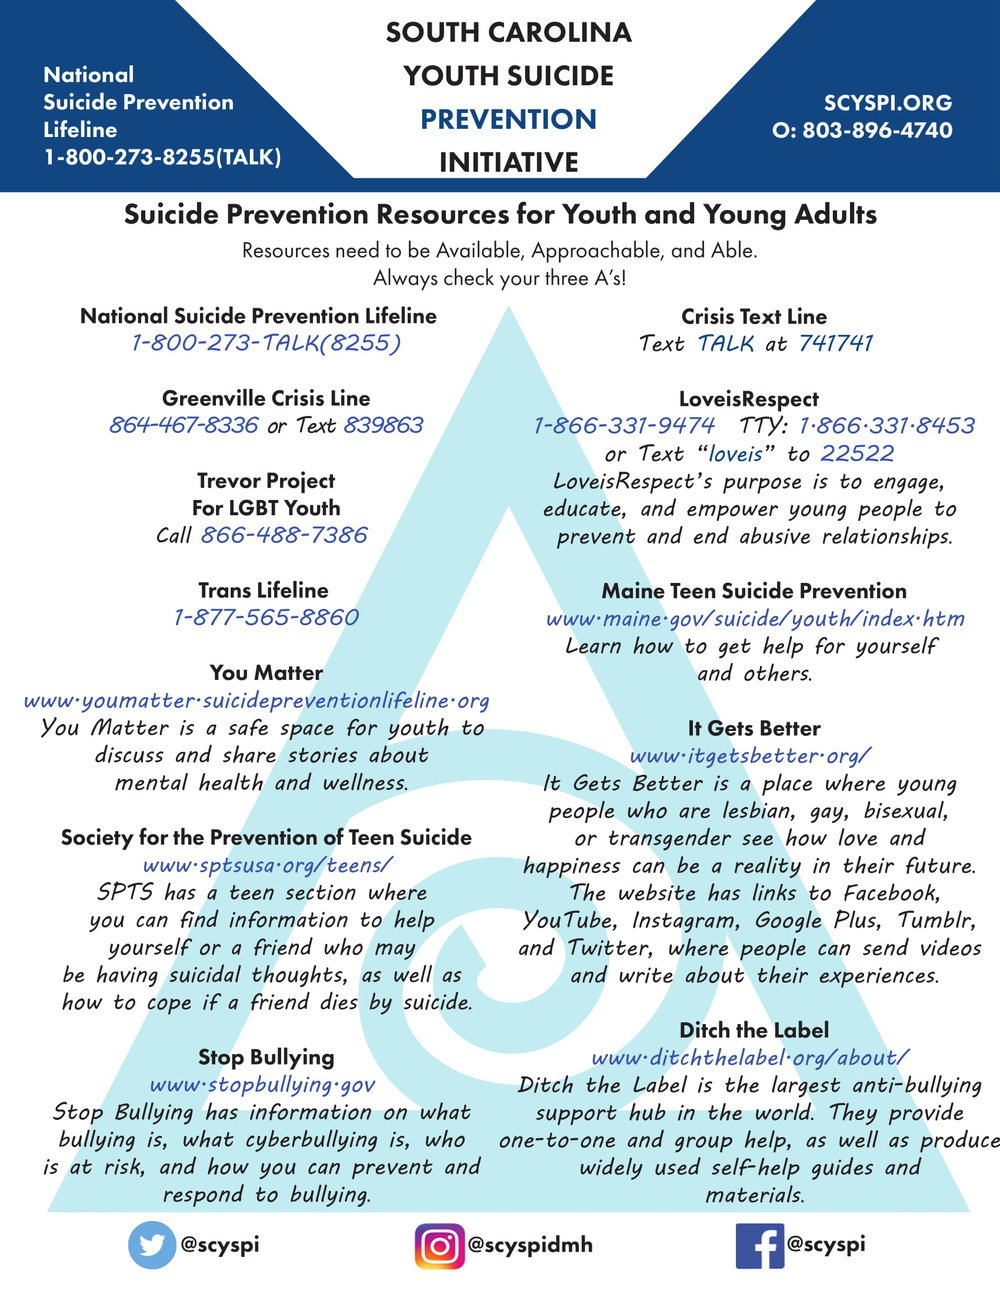 Resources for Youth and Young Adults